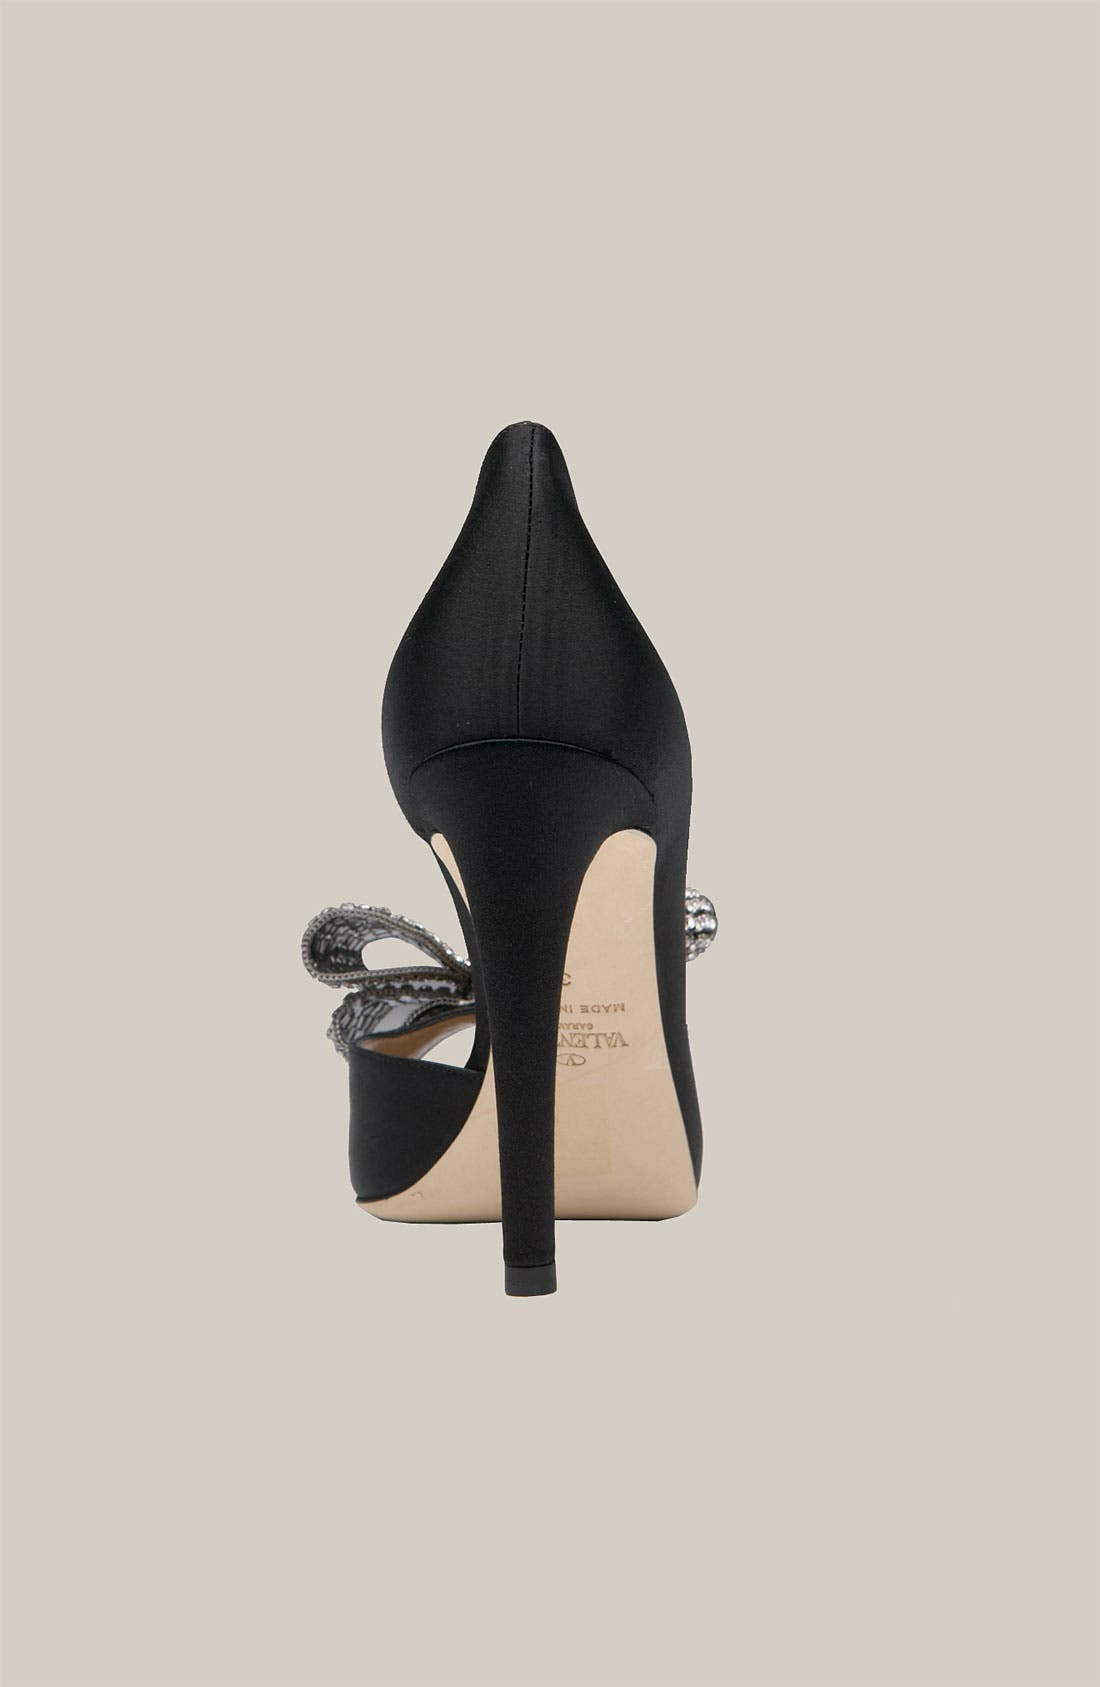 VALENTINO GARAVANI,                             Jewelry Couture Bow d'Orsay Pump,                             Alternate thumbnail 4, color,                             001